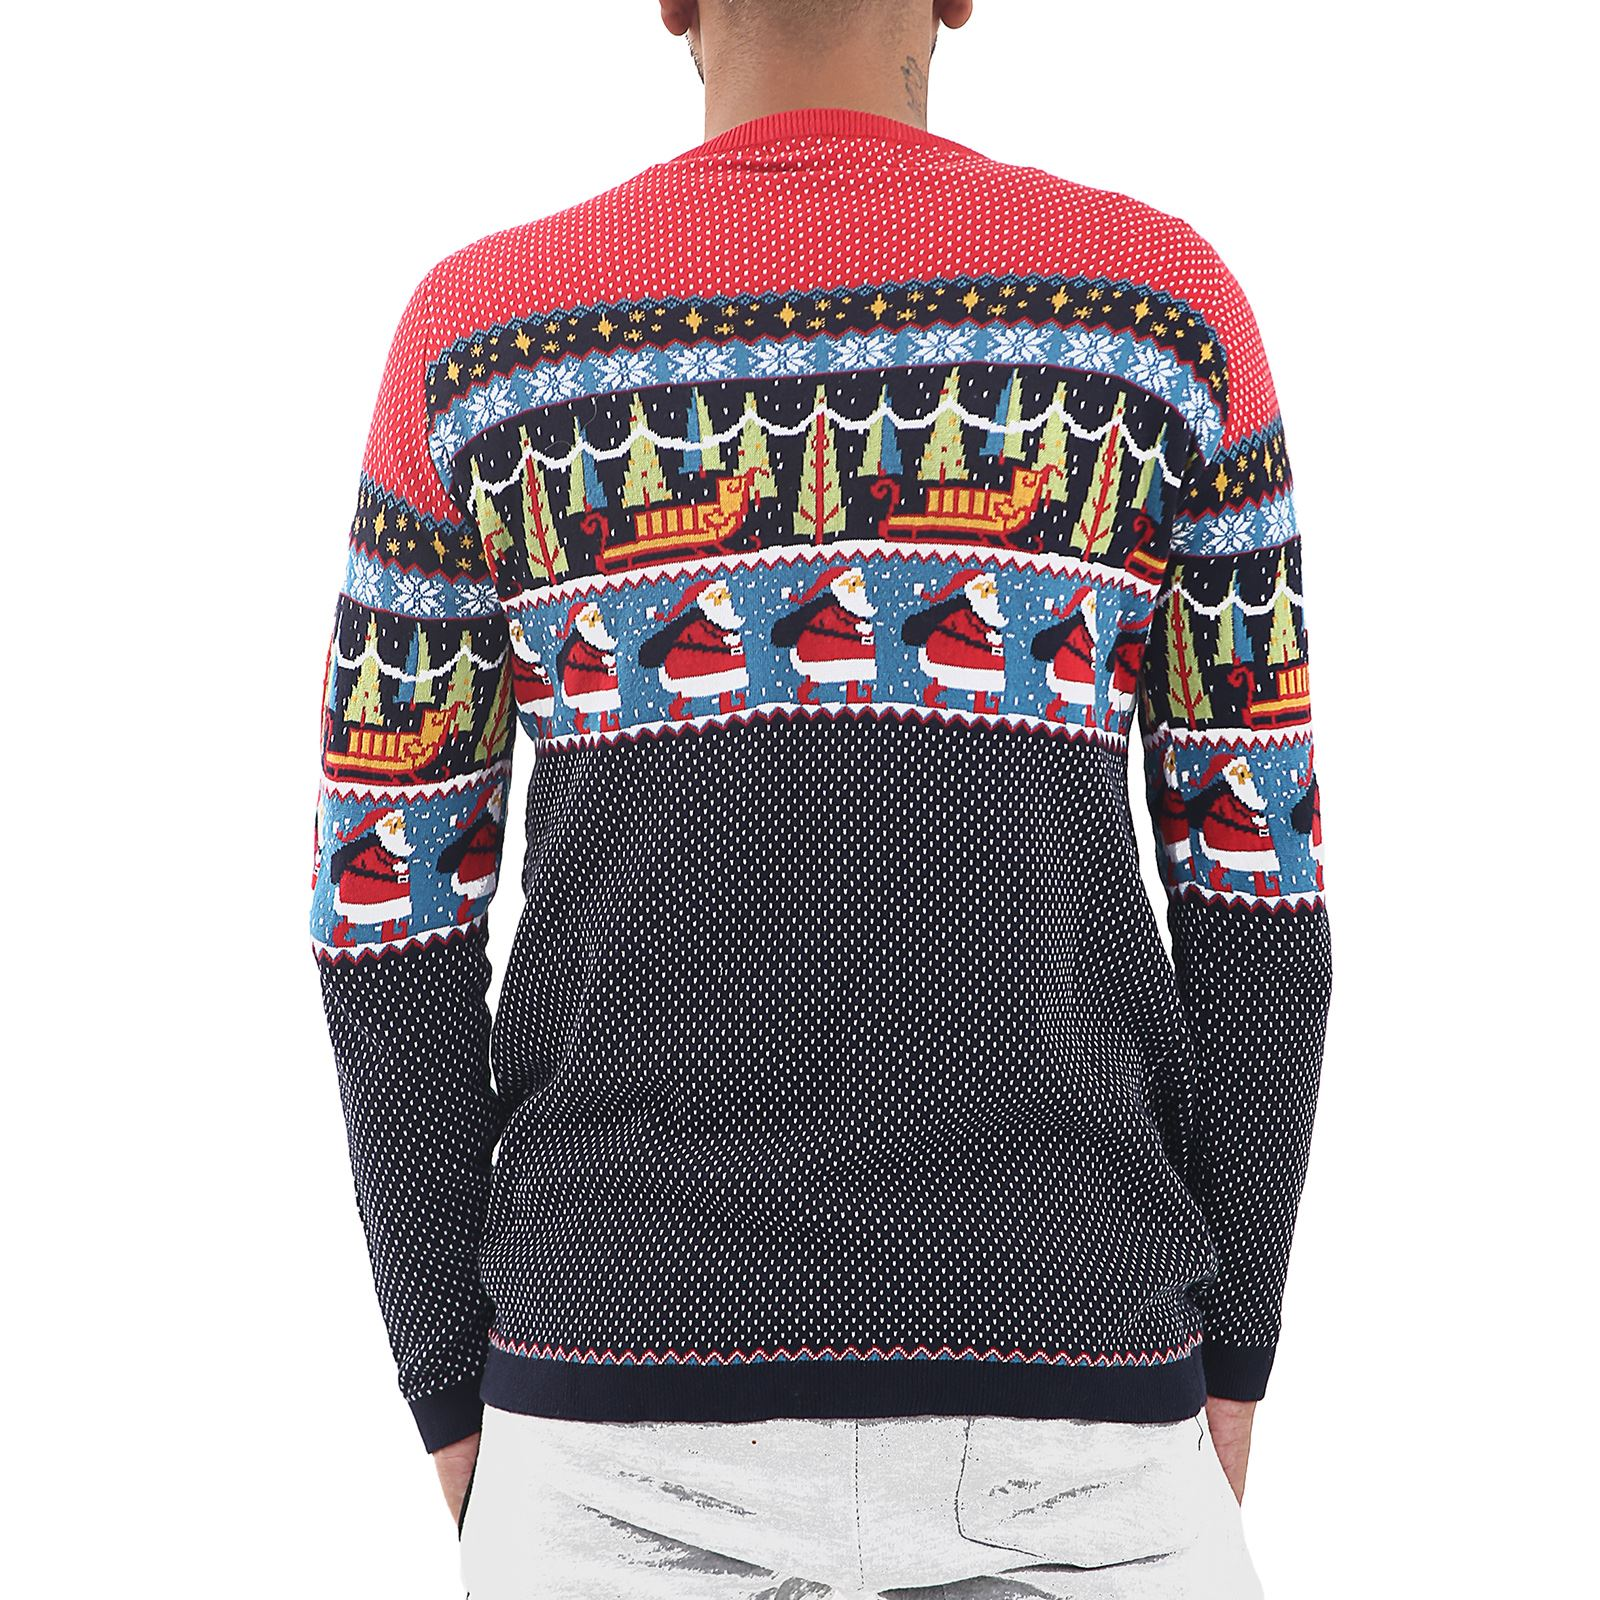 Mens-Ladies-Ex-Store-Matching-Christmas-Sweater-Jumper-Sweatshirt-Xmas-His-Hers thumbnail 7